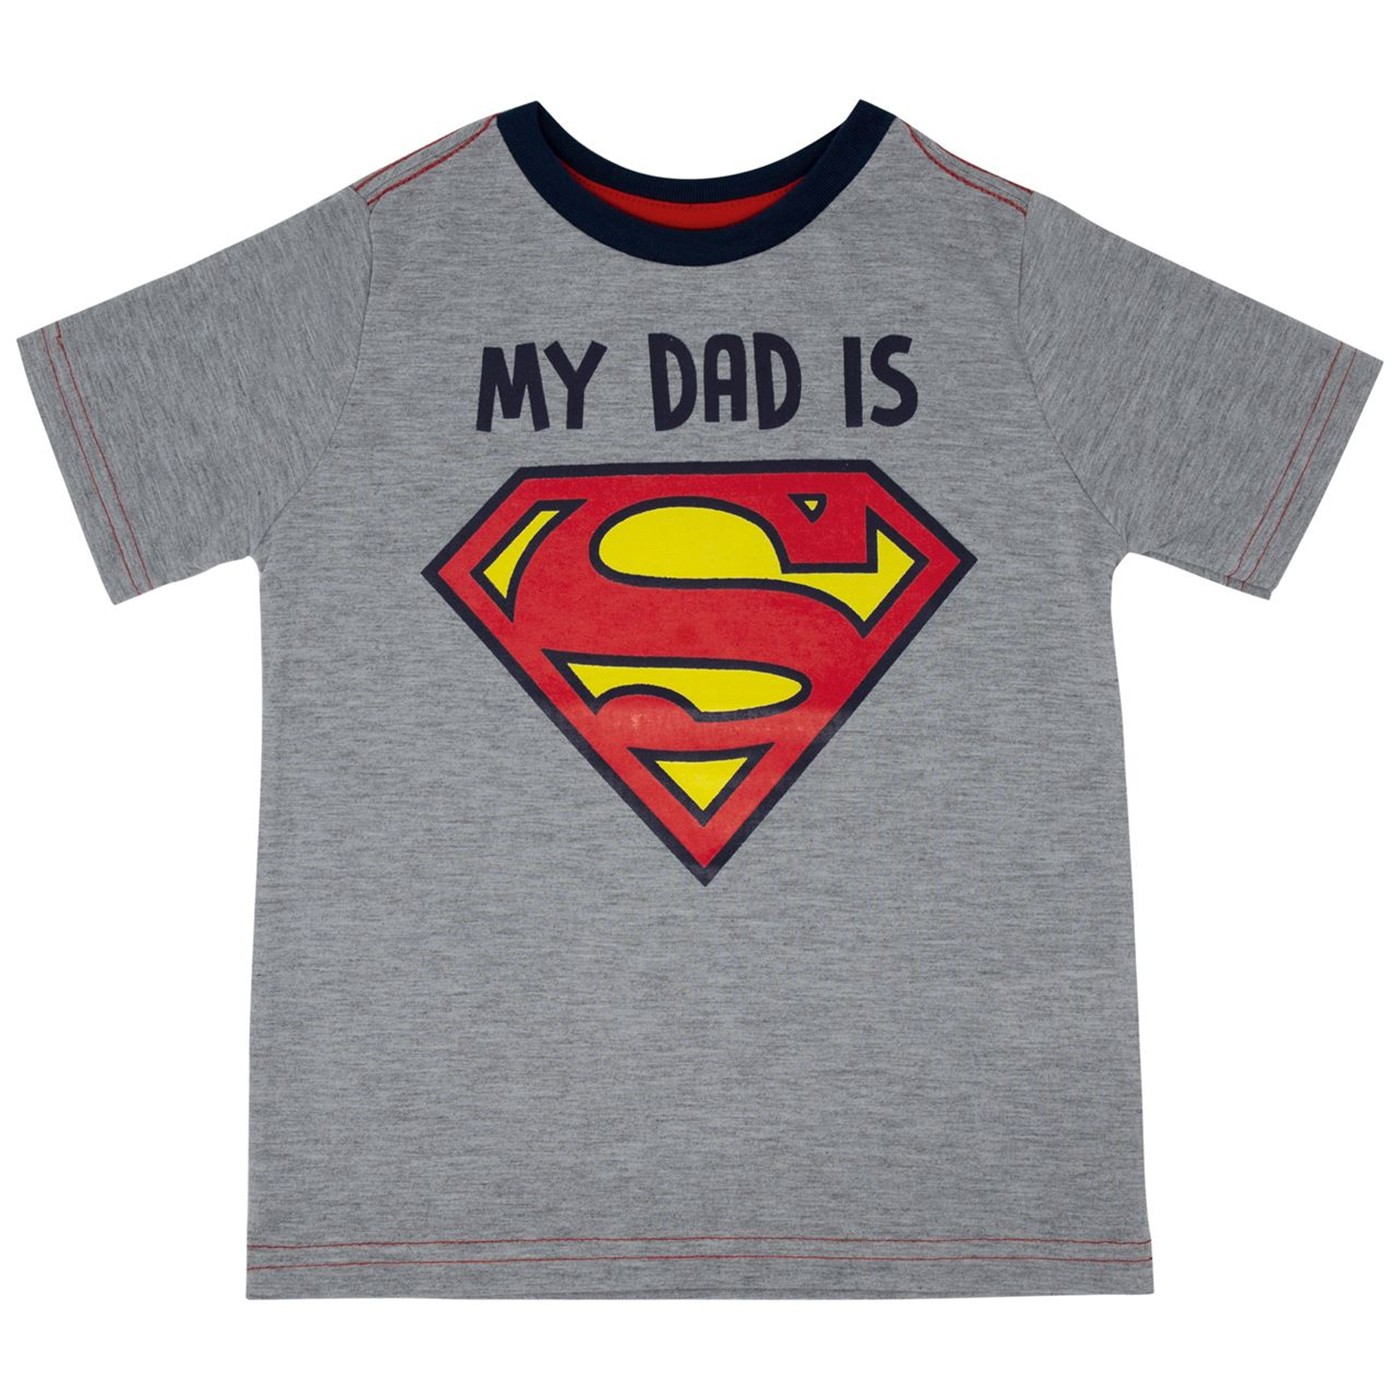 My Dad is Superman Toddler T-Shirt